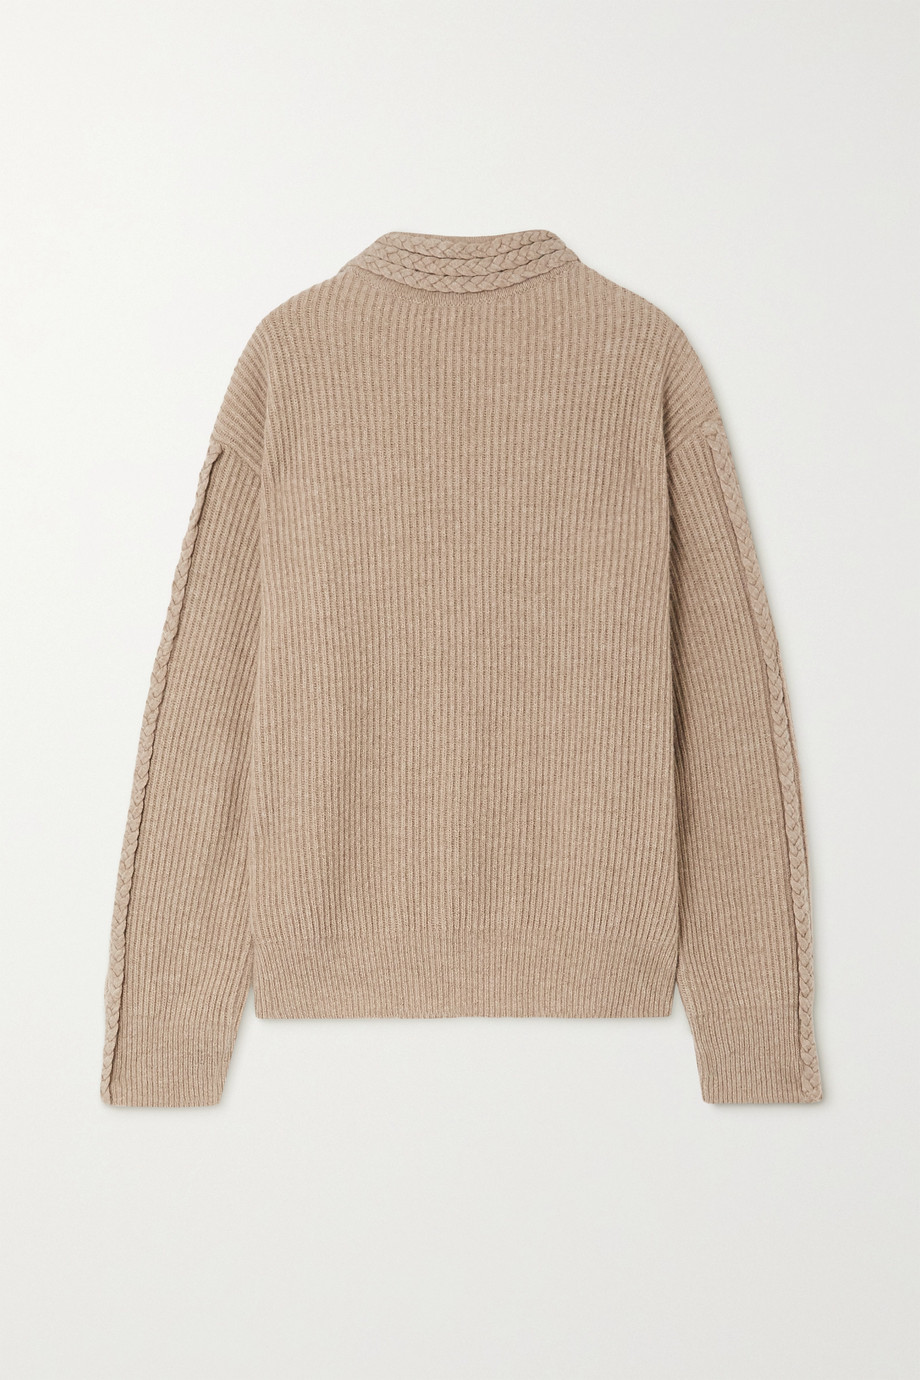 ENVELOPE1976 Zurich cable-knit merino wool and cashmere-blend sweater